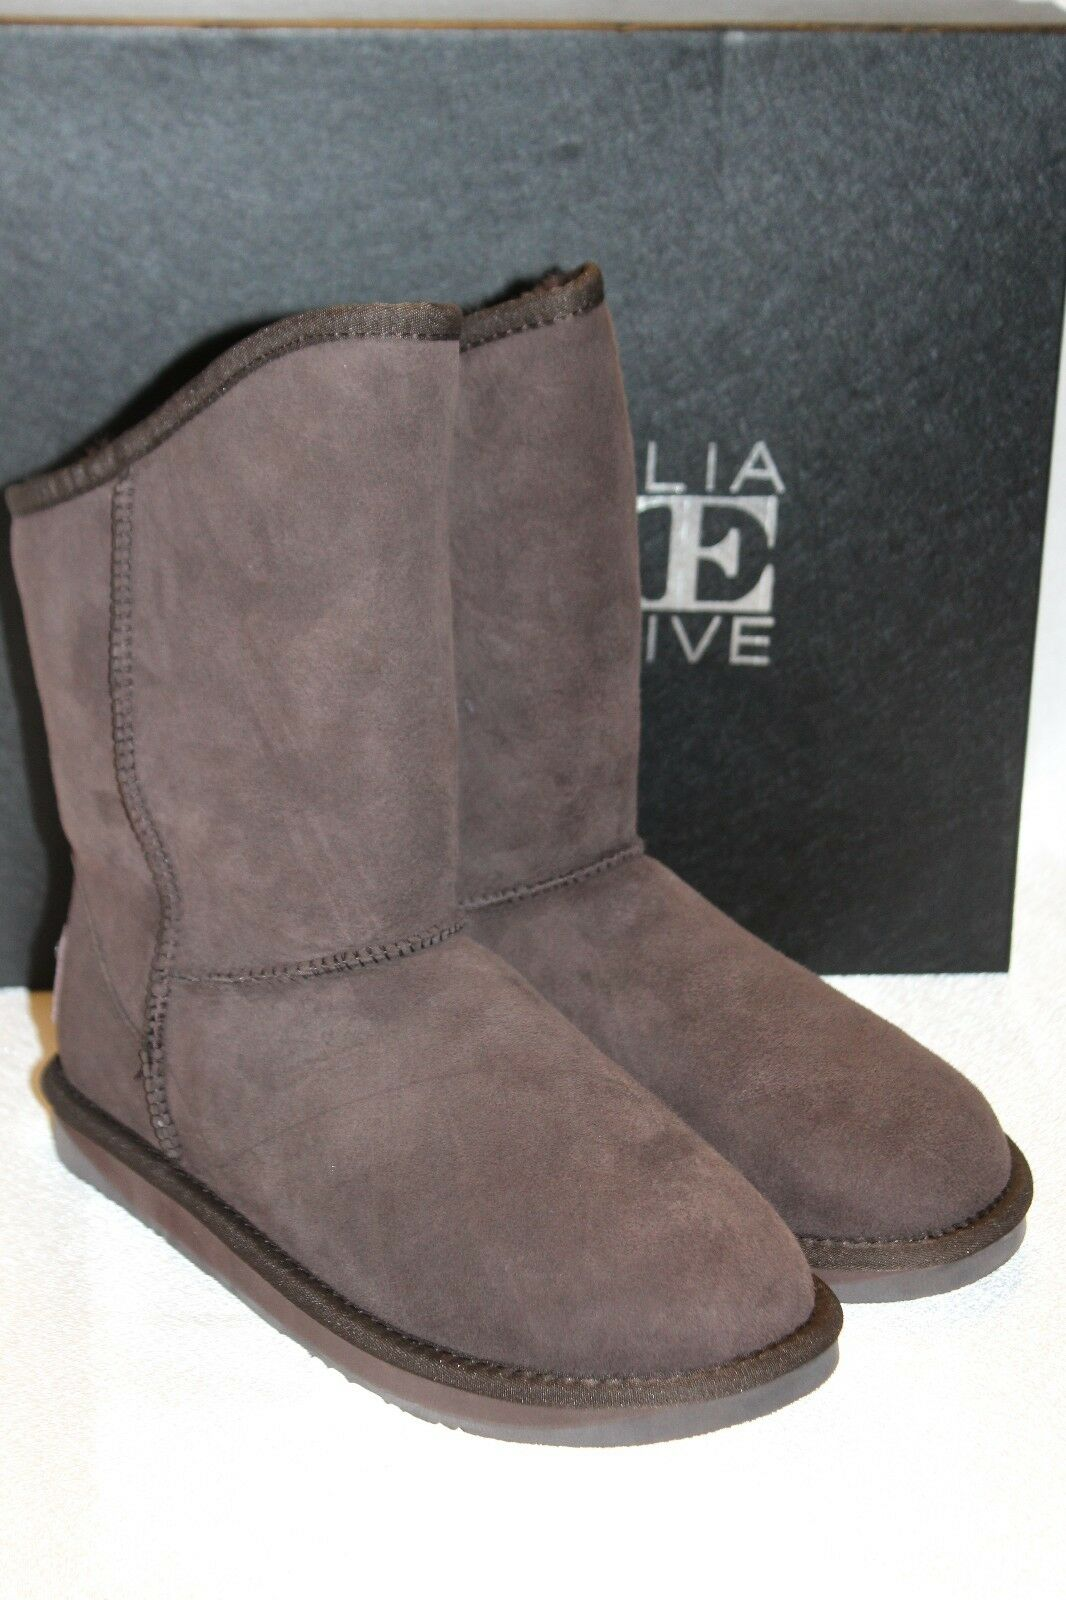 AUSTRALIA LUXE Collective Beva Brown Suede Shearling COSY SHORT  Boots Sz 8 170